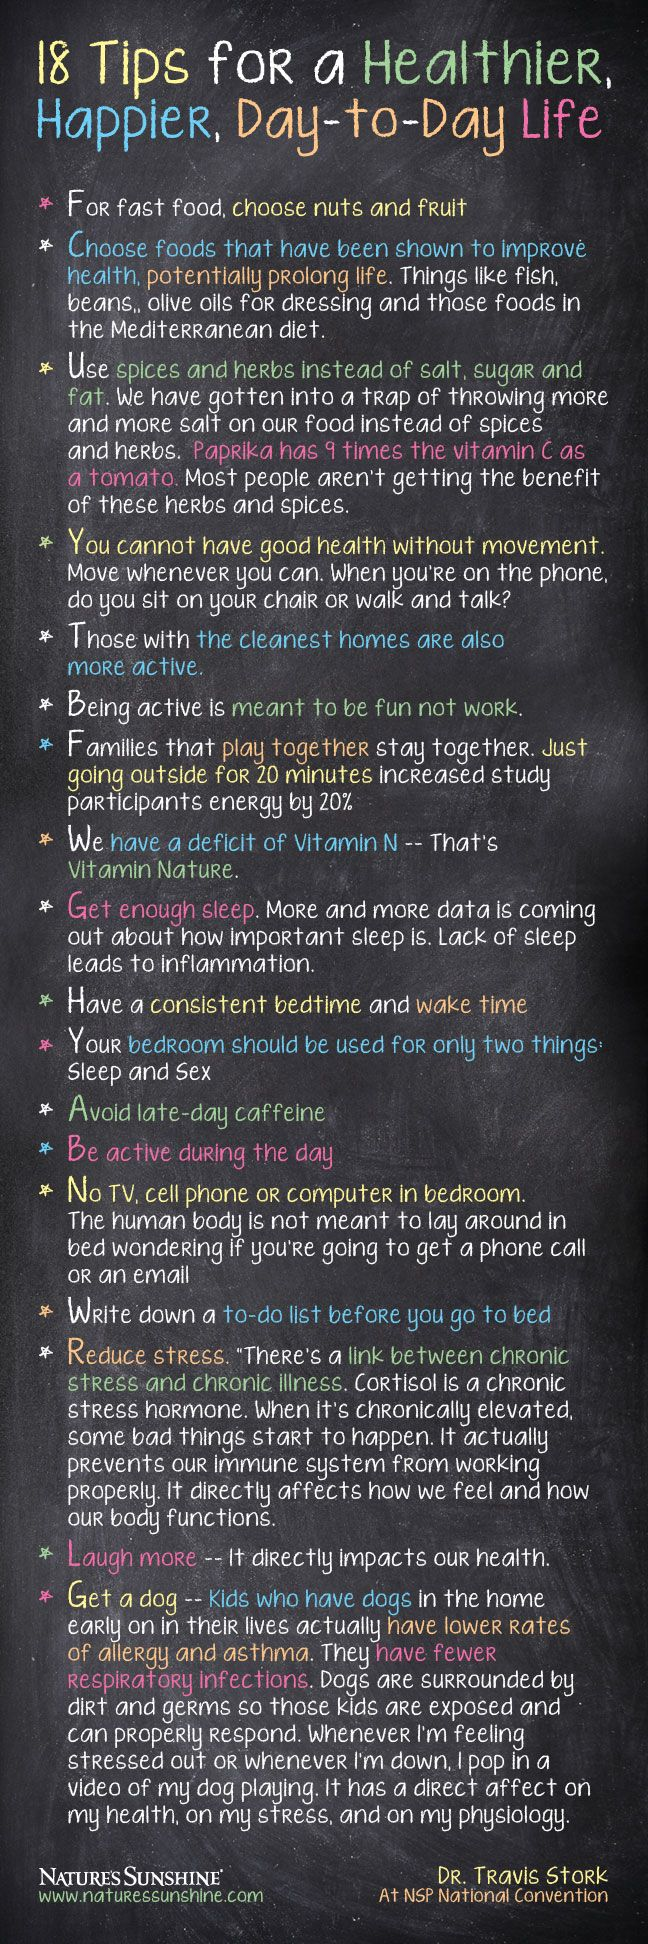 Dr. Travis Storks 18 Simple Tips For a Healthier, Happier, Day-to-Day Life [Image]